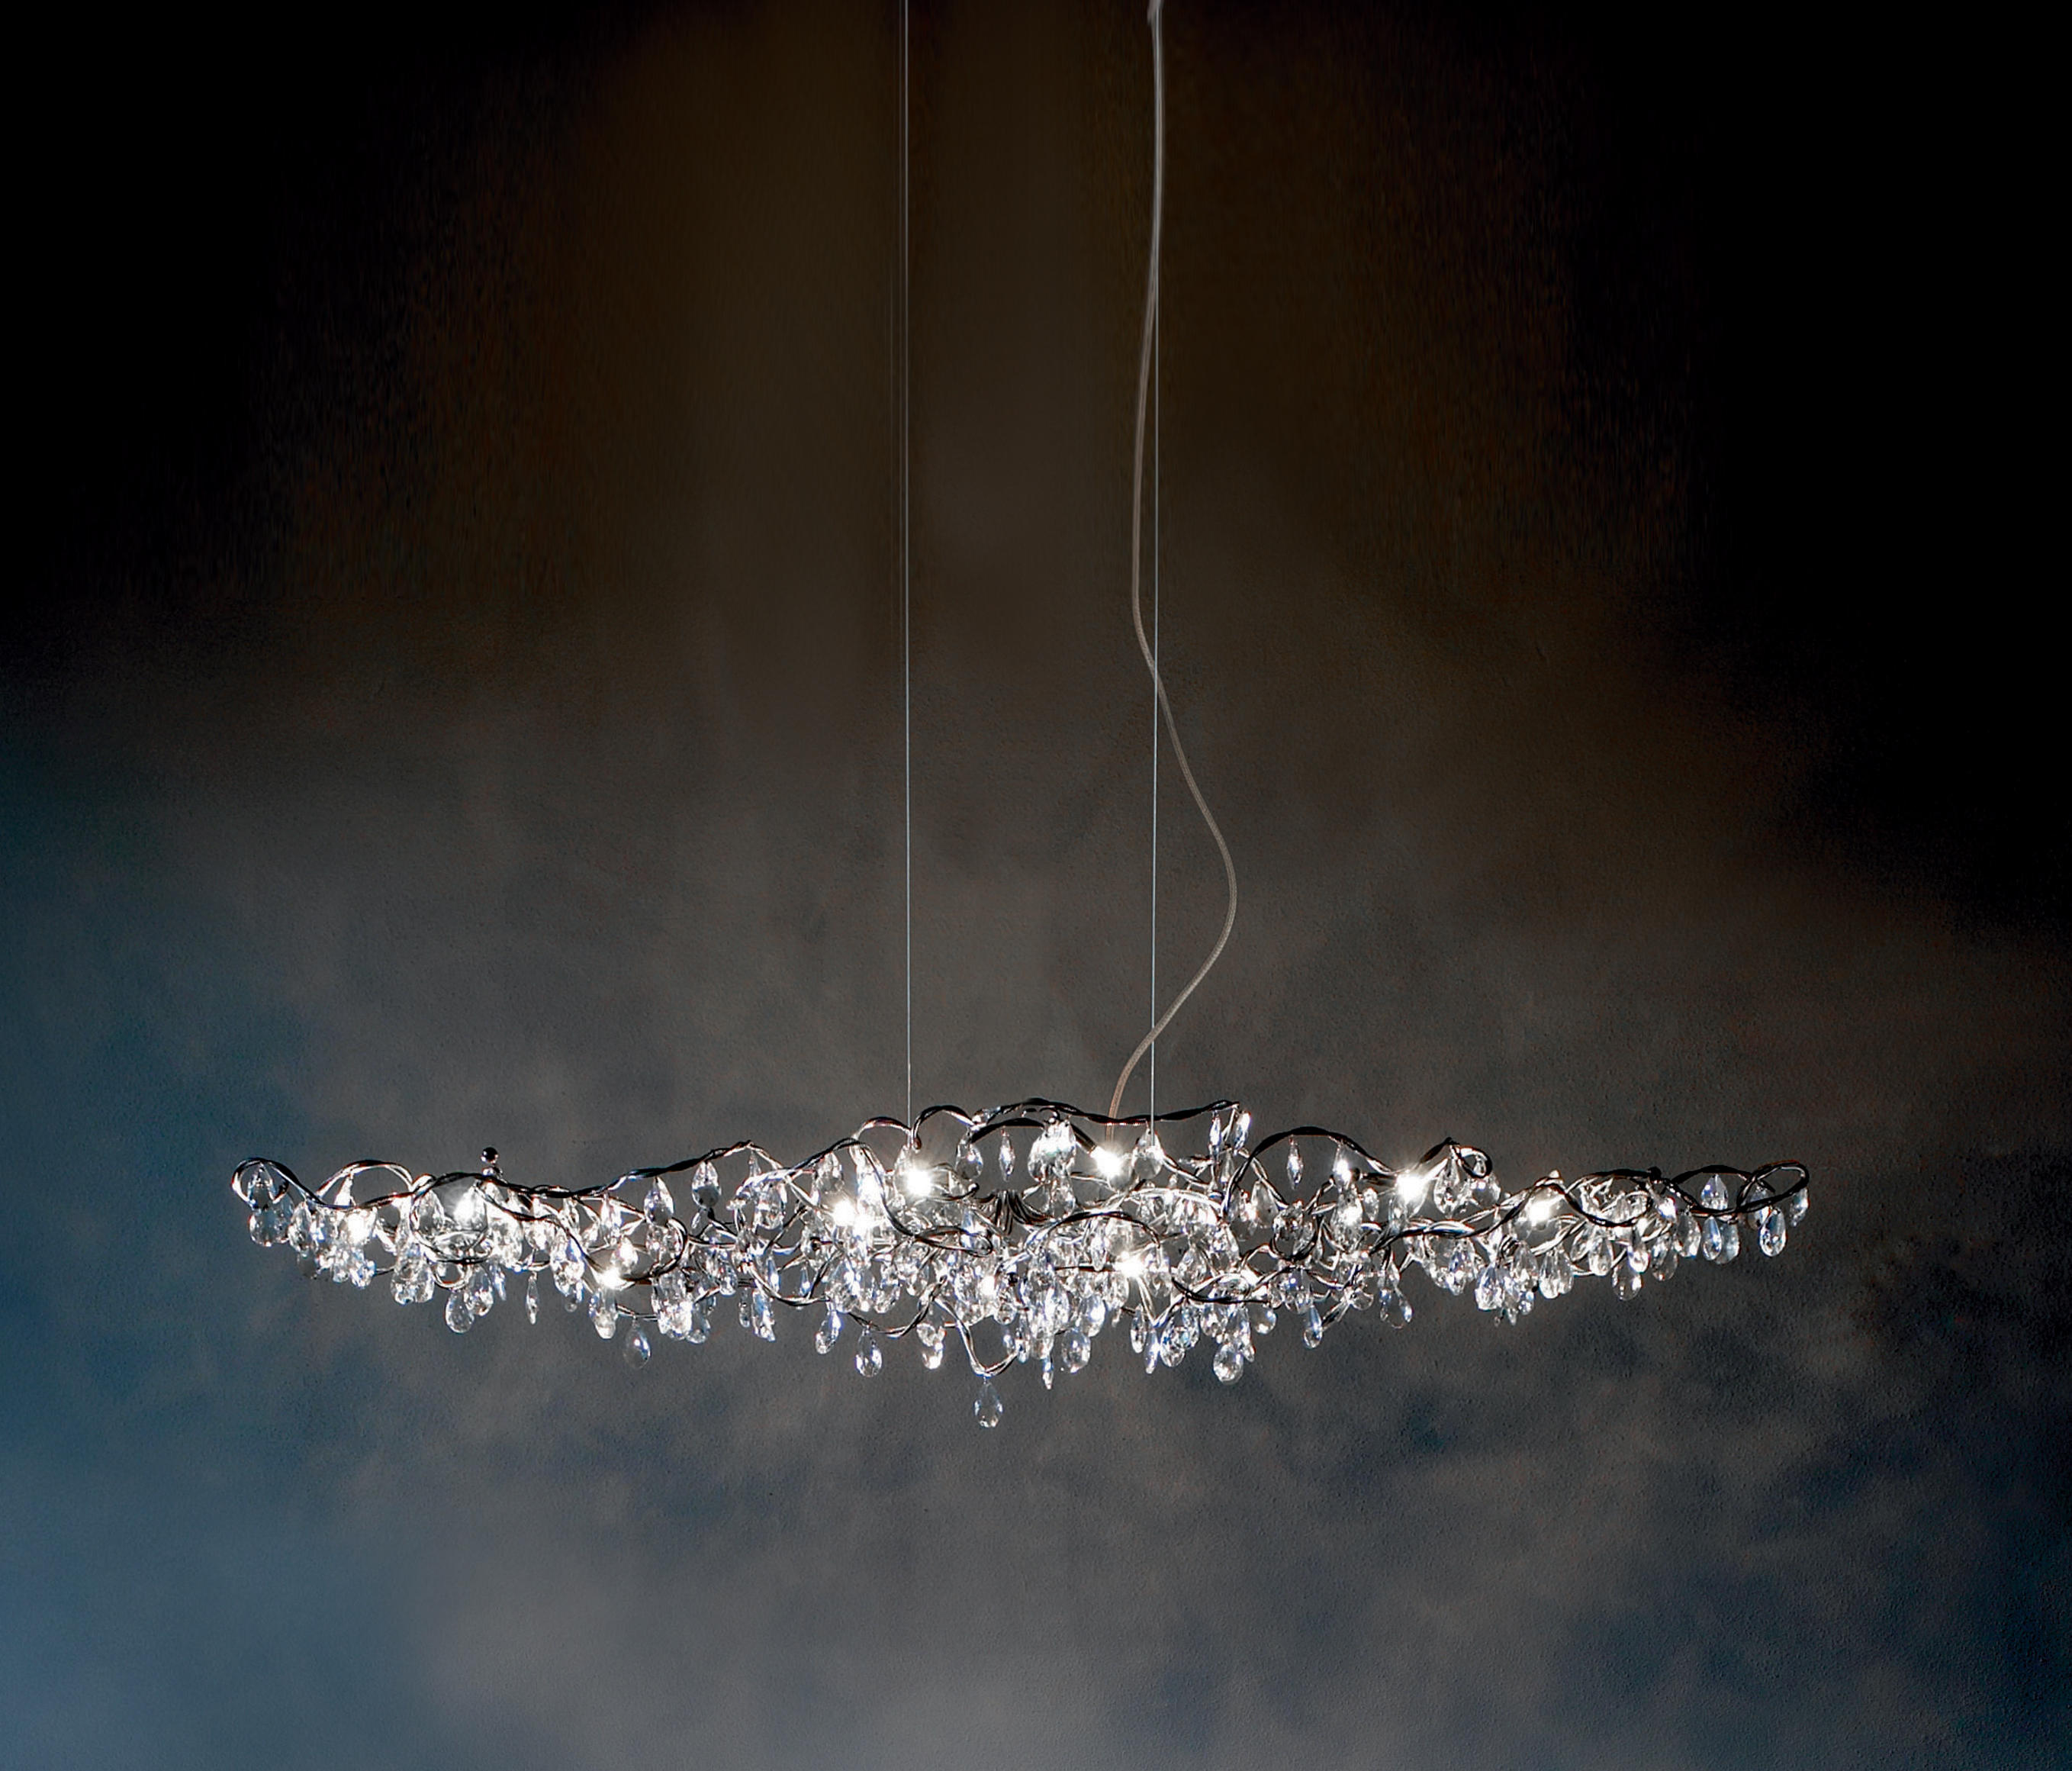 Tiara Sky Pendant Light 18 Architonic